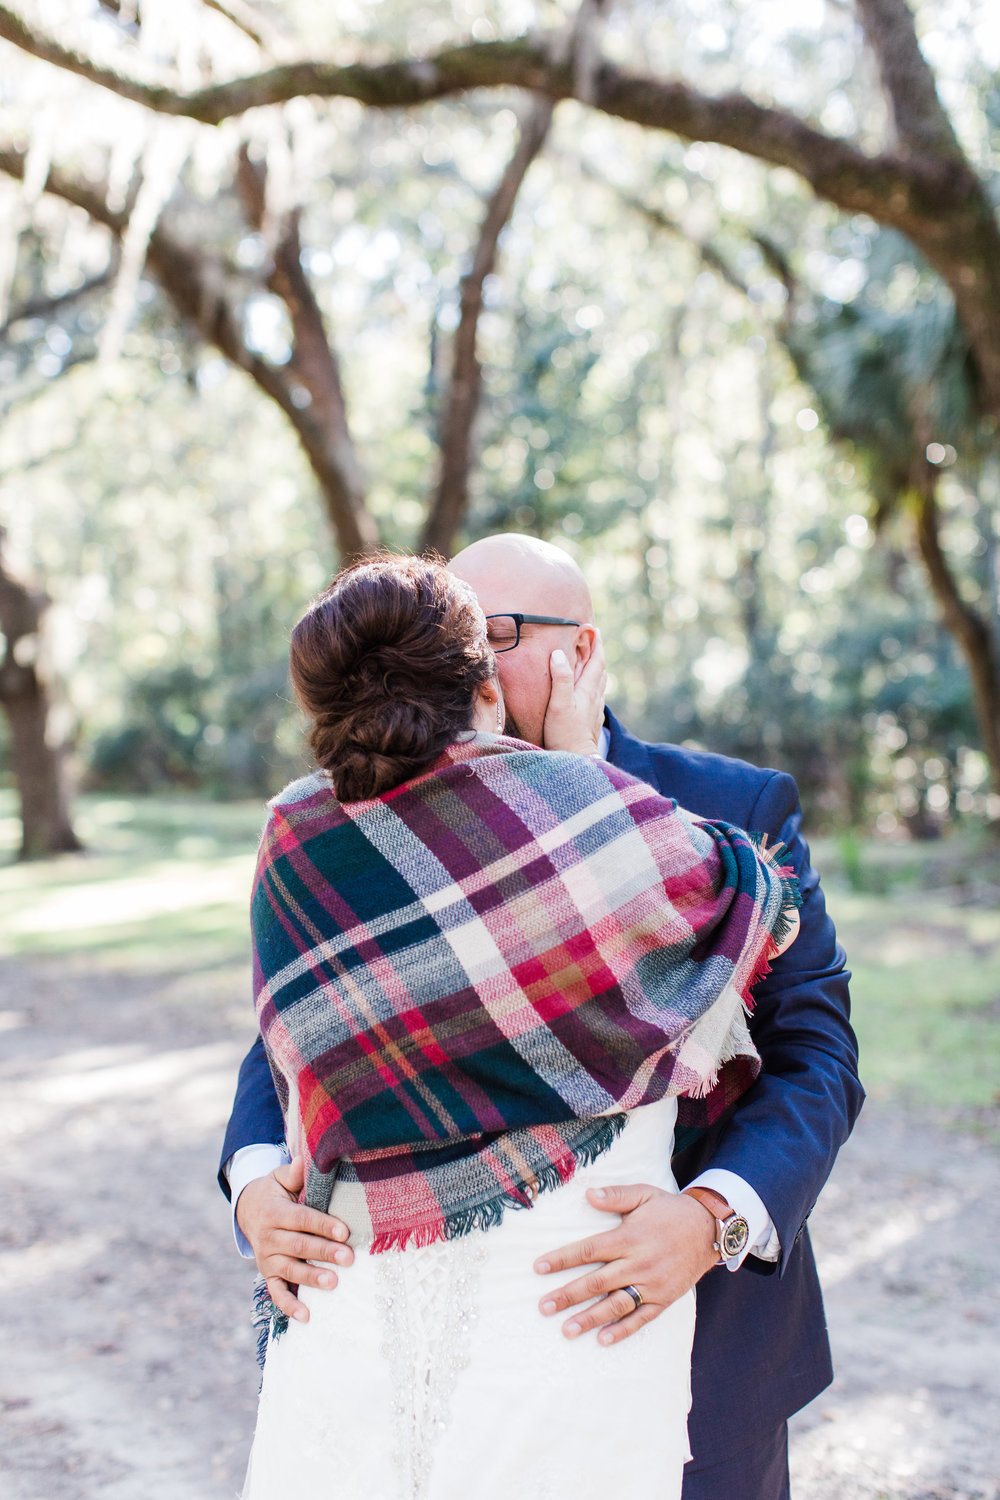 apt-b-photography-kristy-rob-wormsloe-elopment-savannah-wedding-photographer-savannah-elopement-wormsloe-wedding-historic-savannah-elopement-photographer-30.jpg